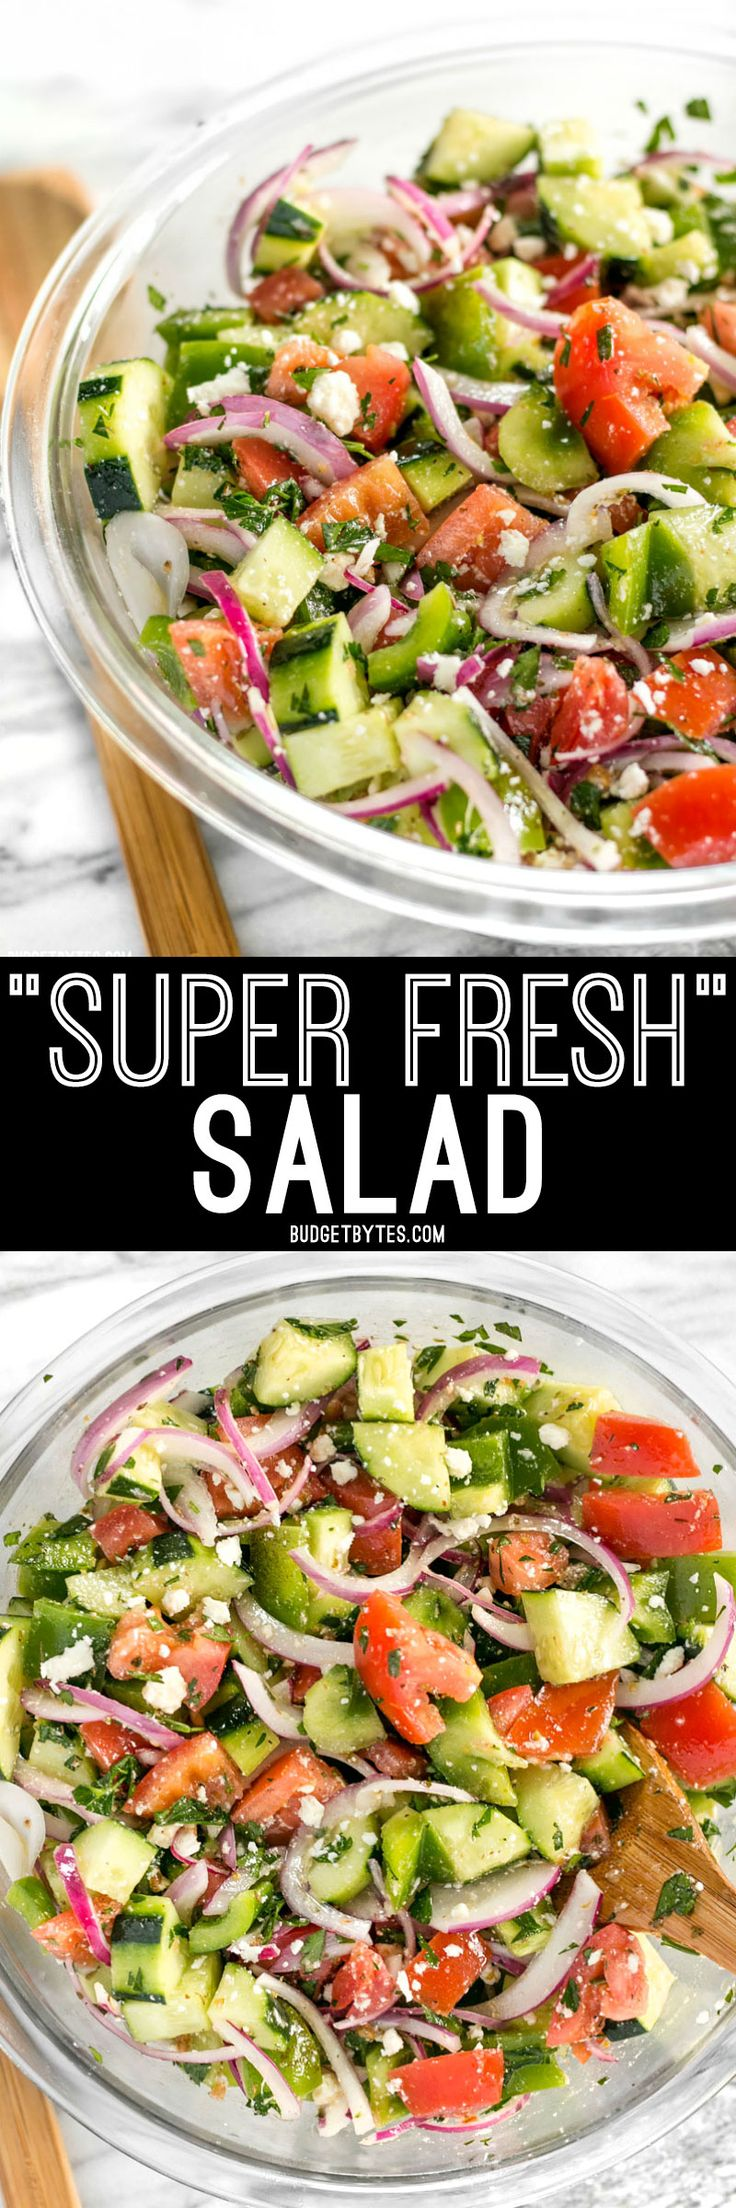 Super Fresh Cucumber Salad: Super Fresh Cucumber Salad is a cold, crunchy, juicy mix of flavorful vegetables topped with a simple red wine and oregano vinaigrette.